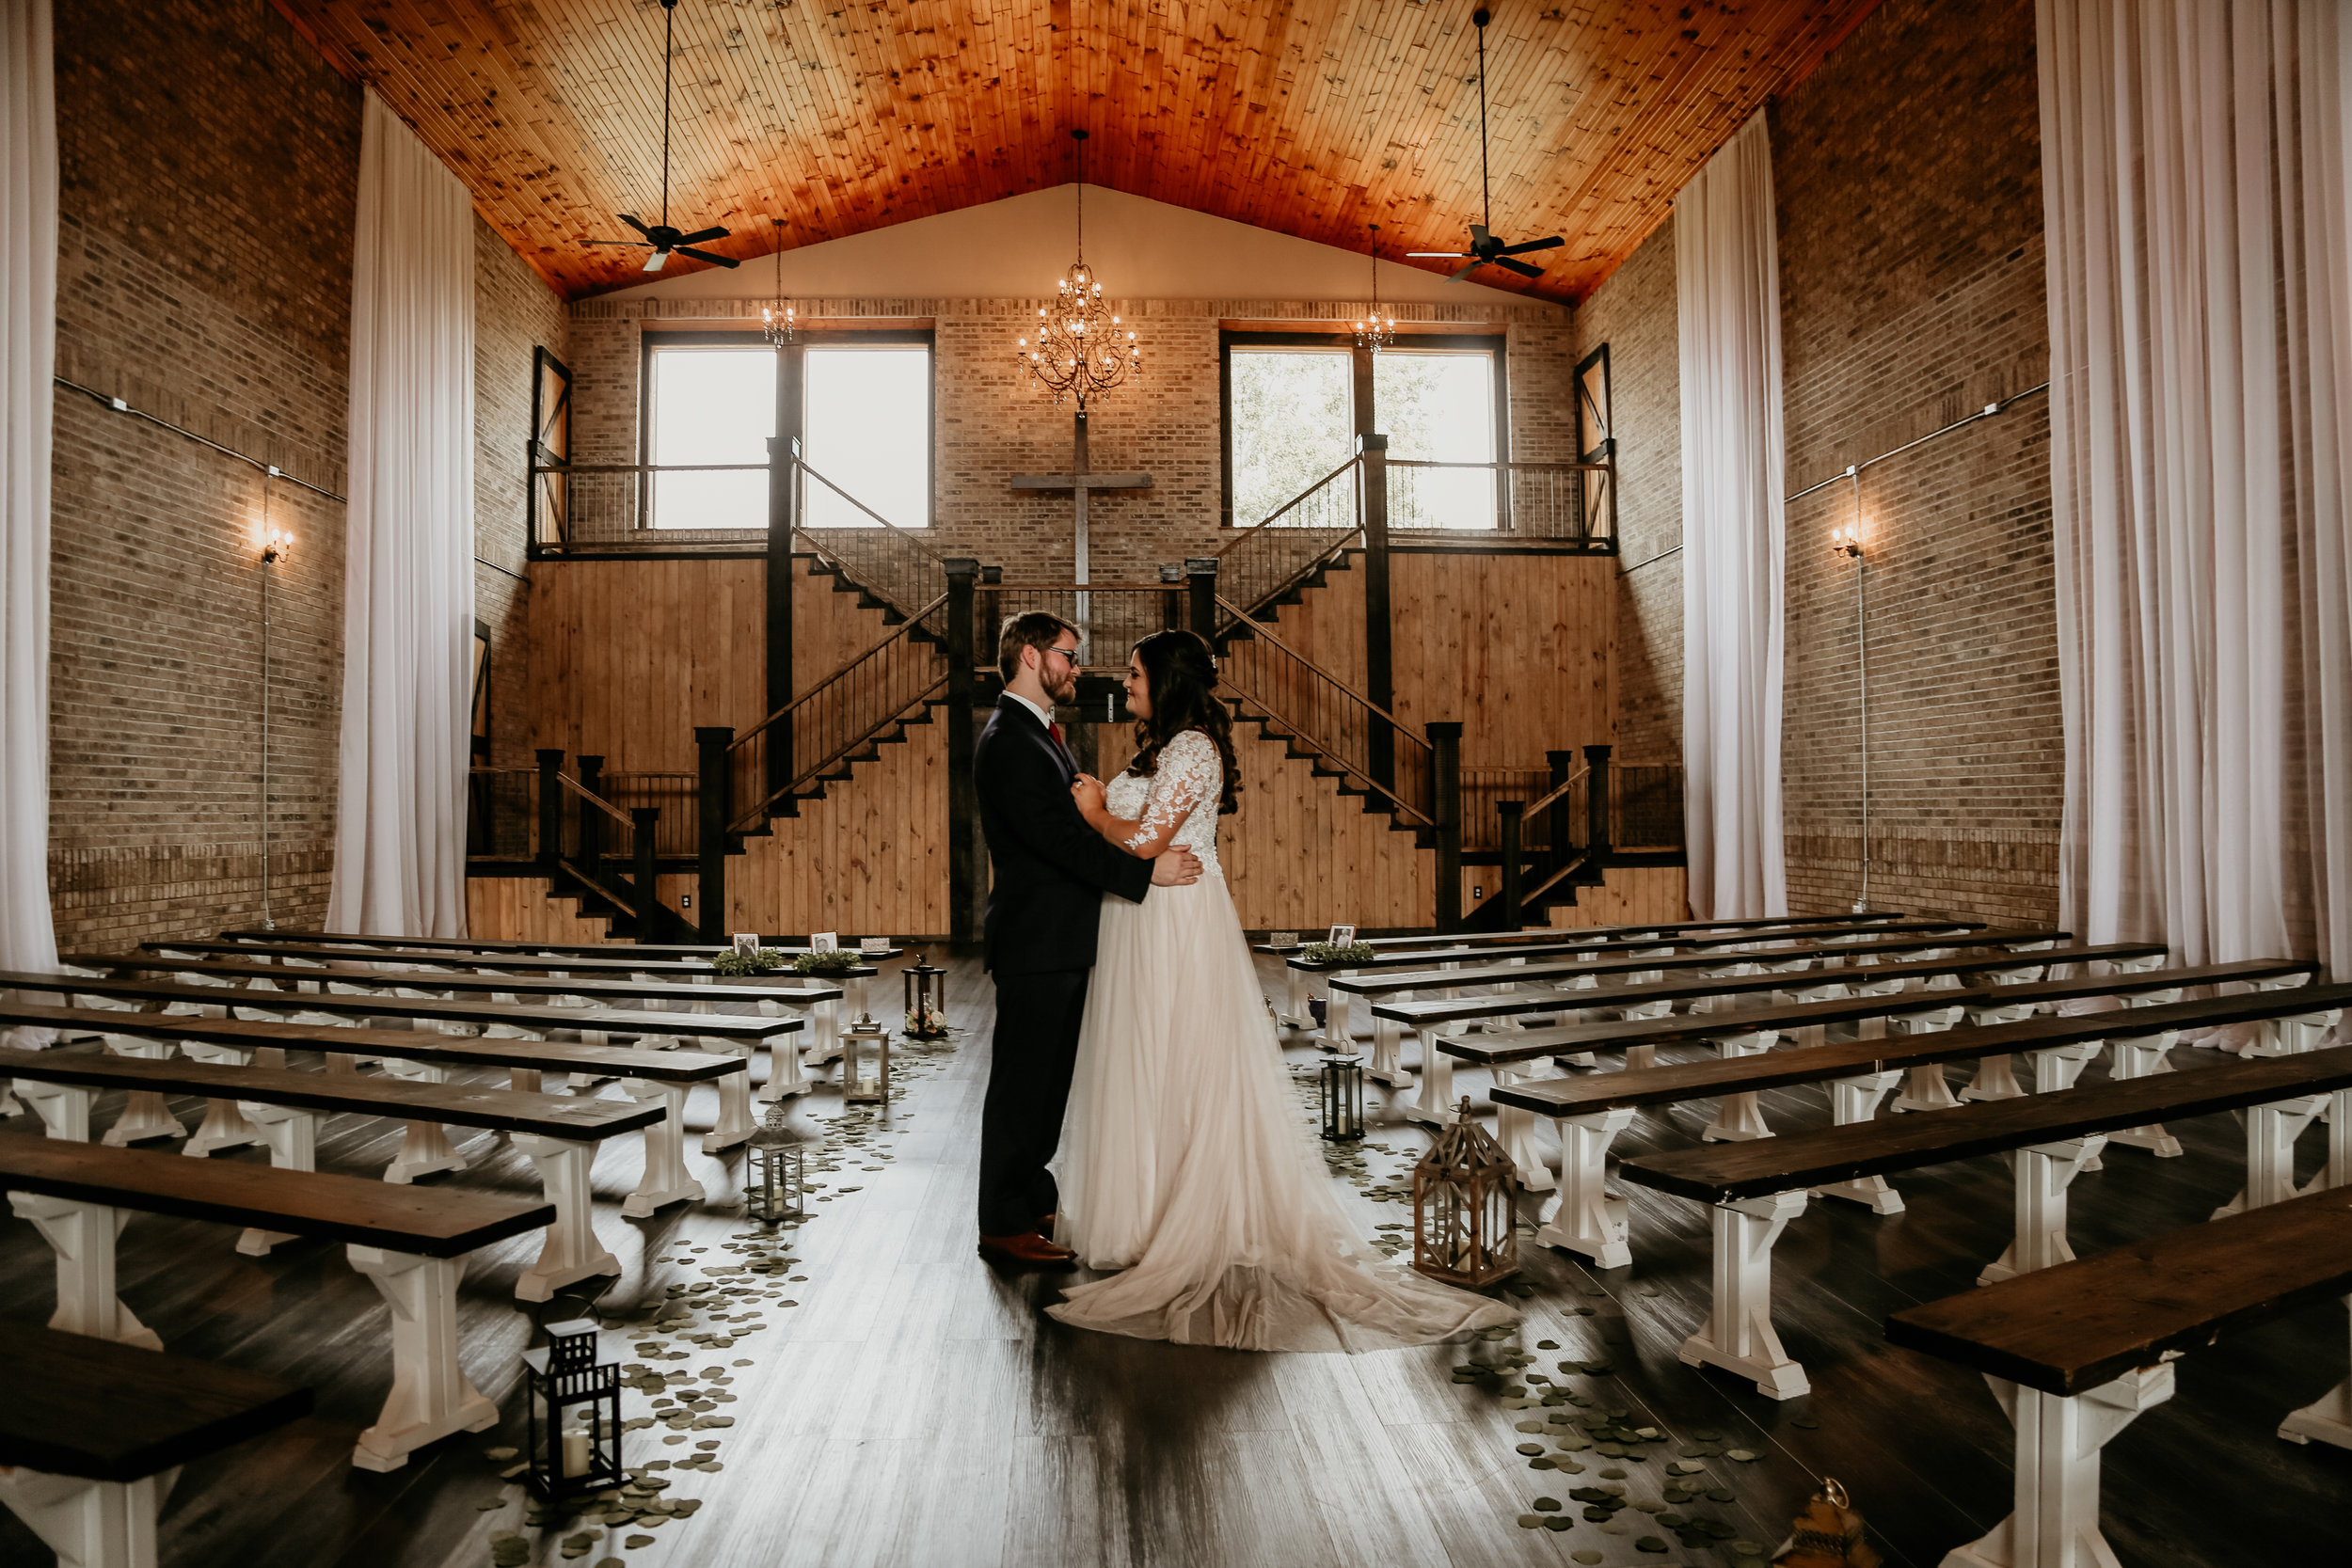 Kelley & Cody Ridley - October 27, 2018Rebecca Marie Photography